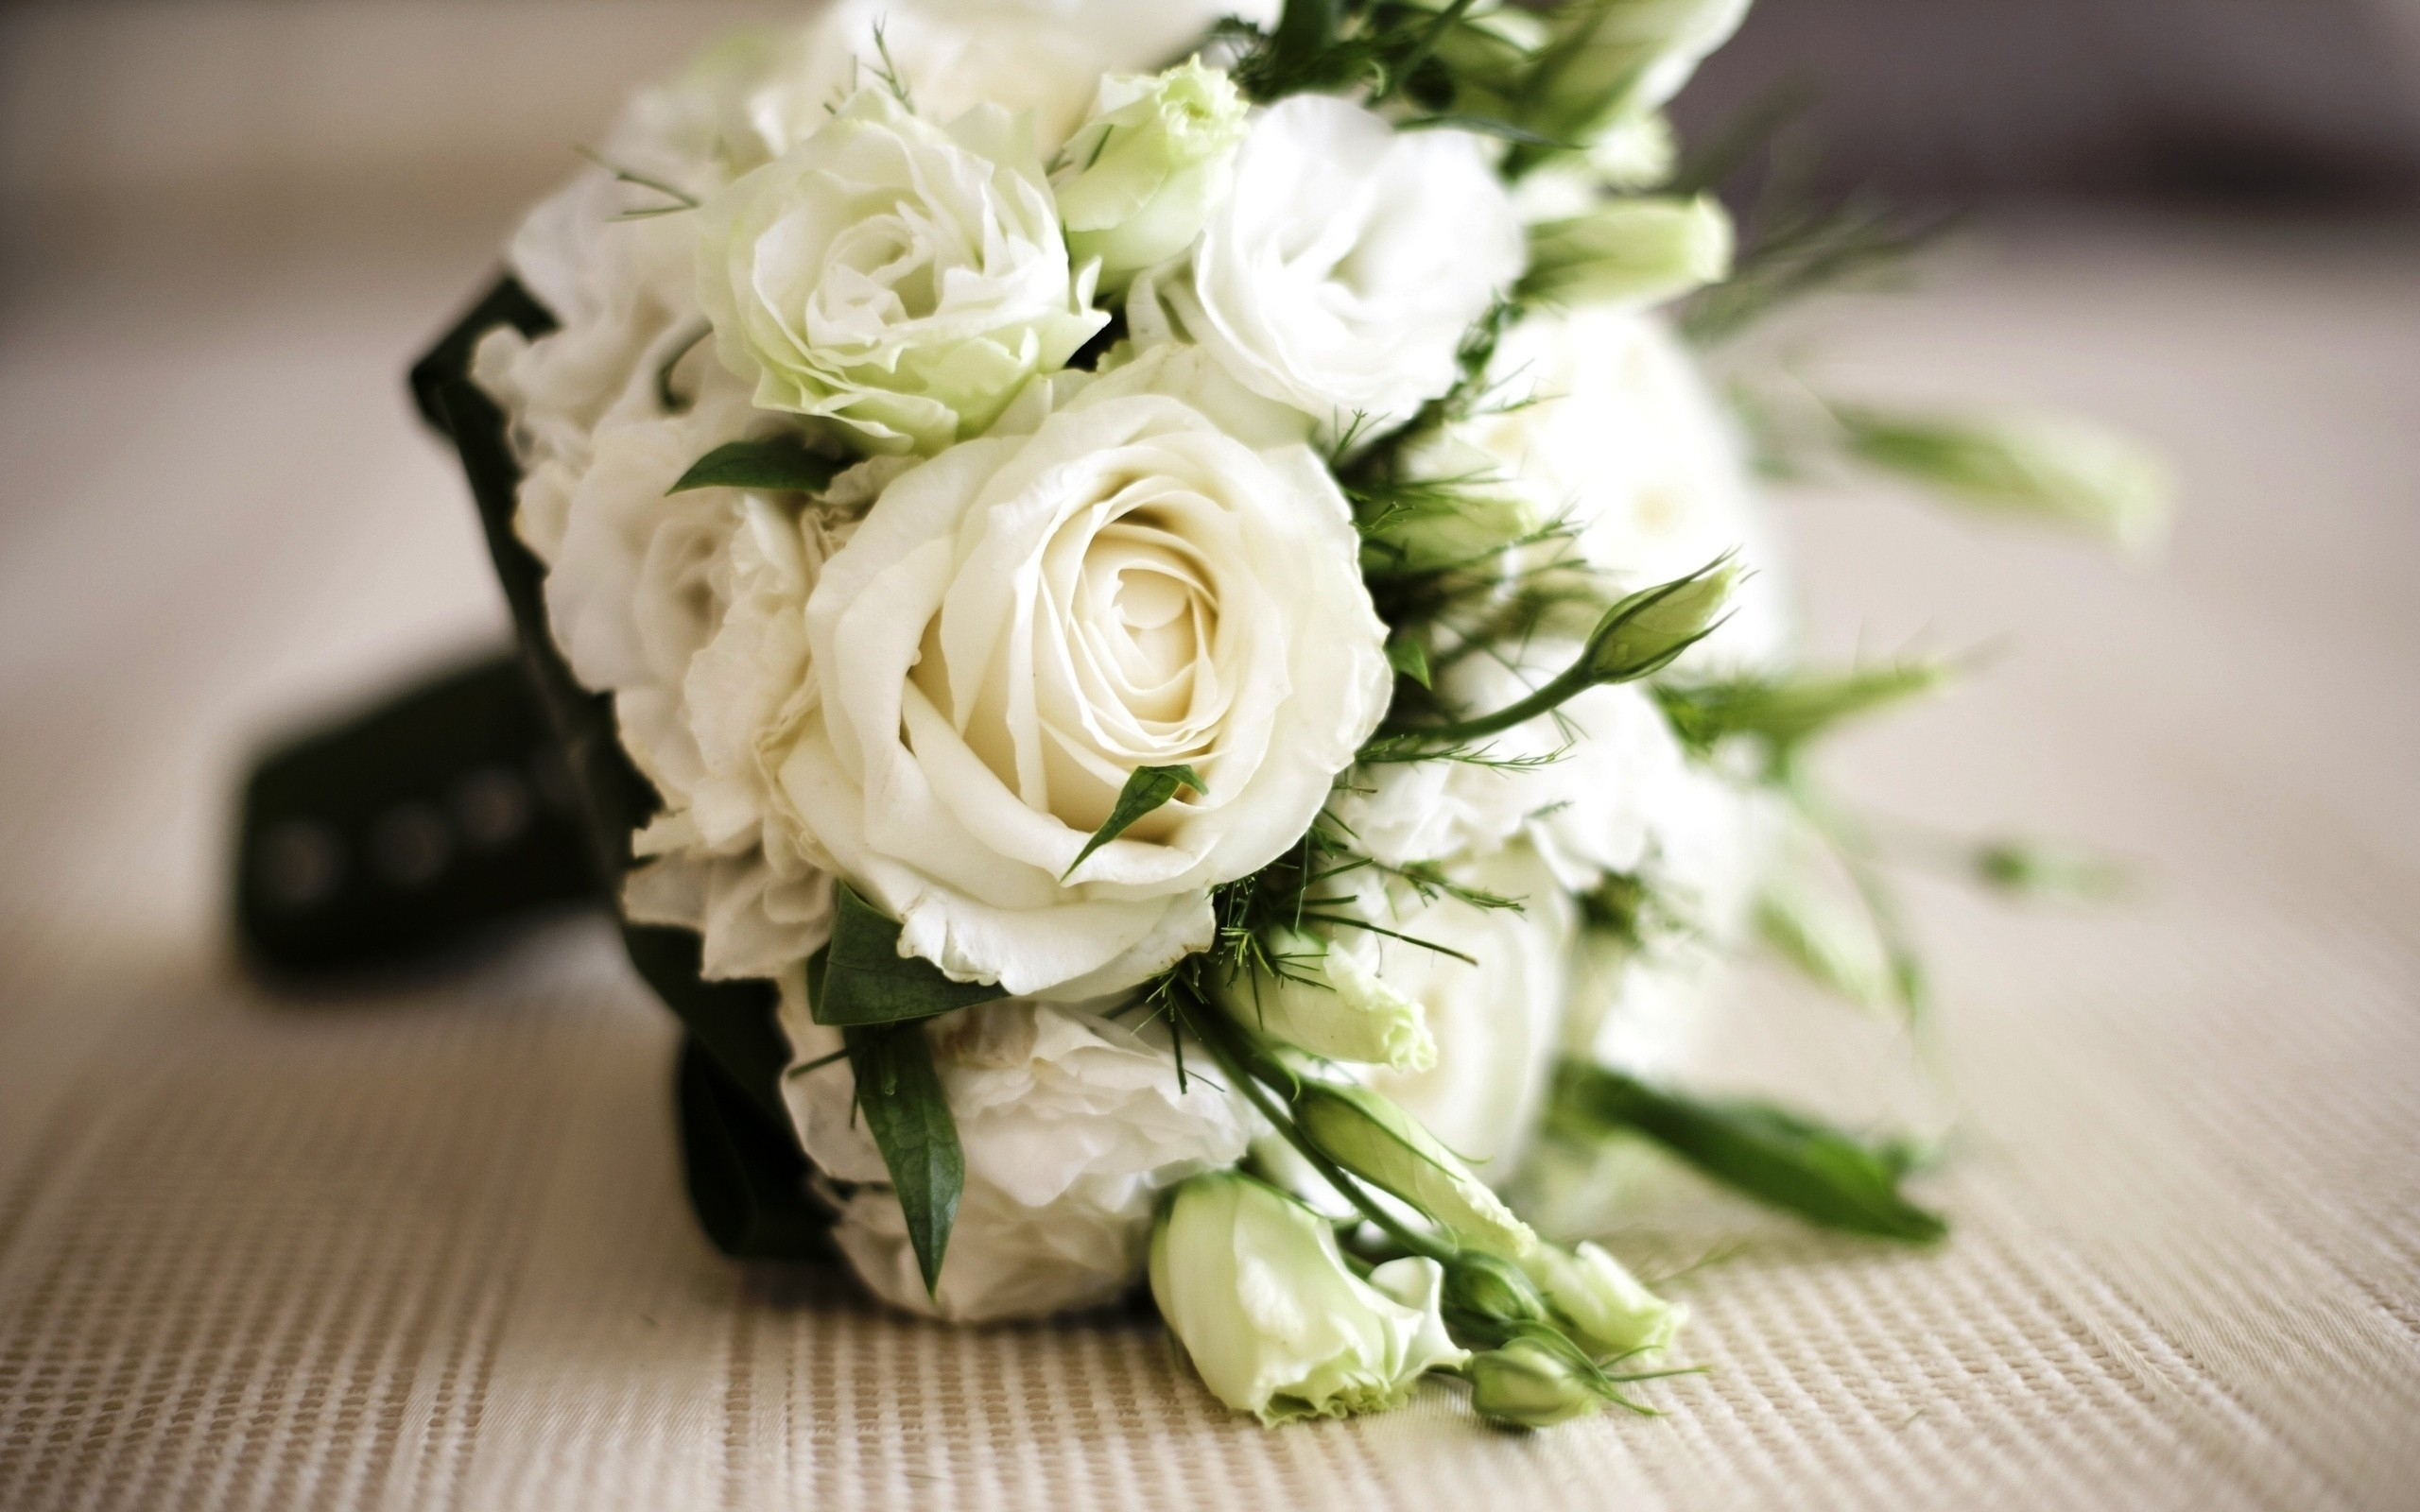 White Roses Spray Roses Bridal Bouquet Flowerandballooncompany